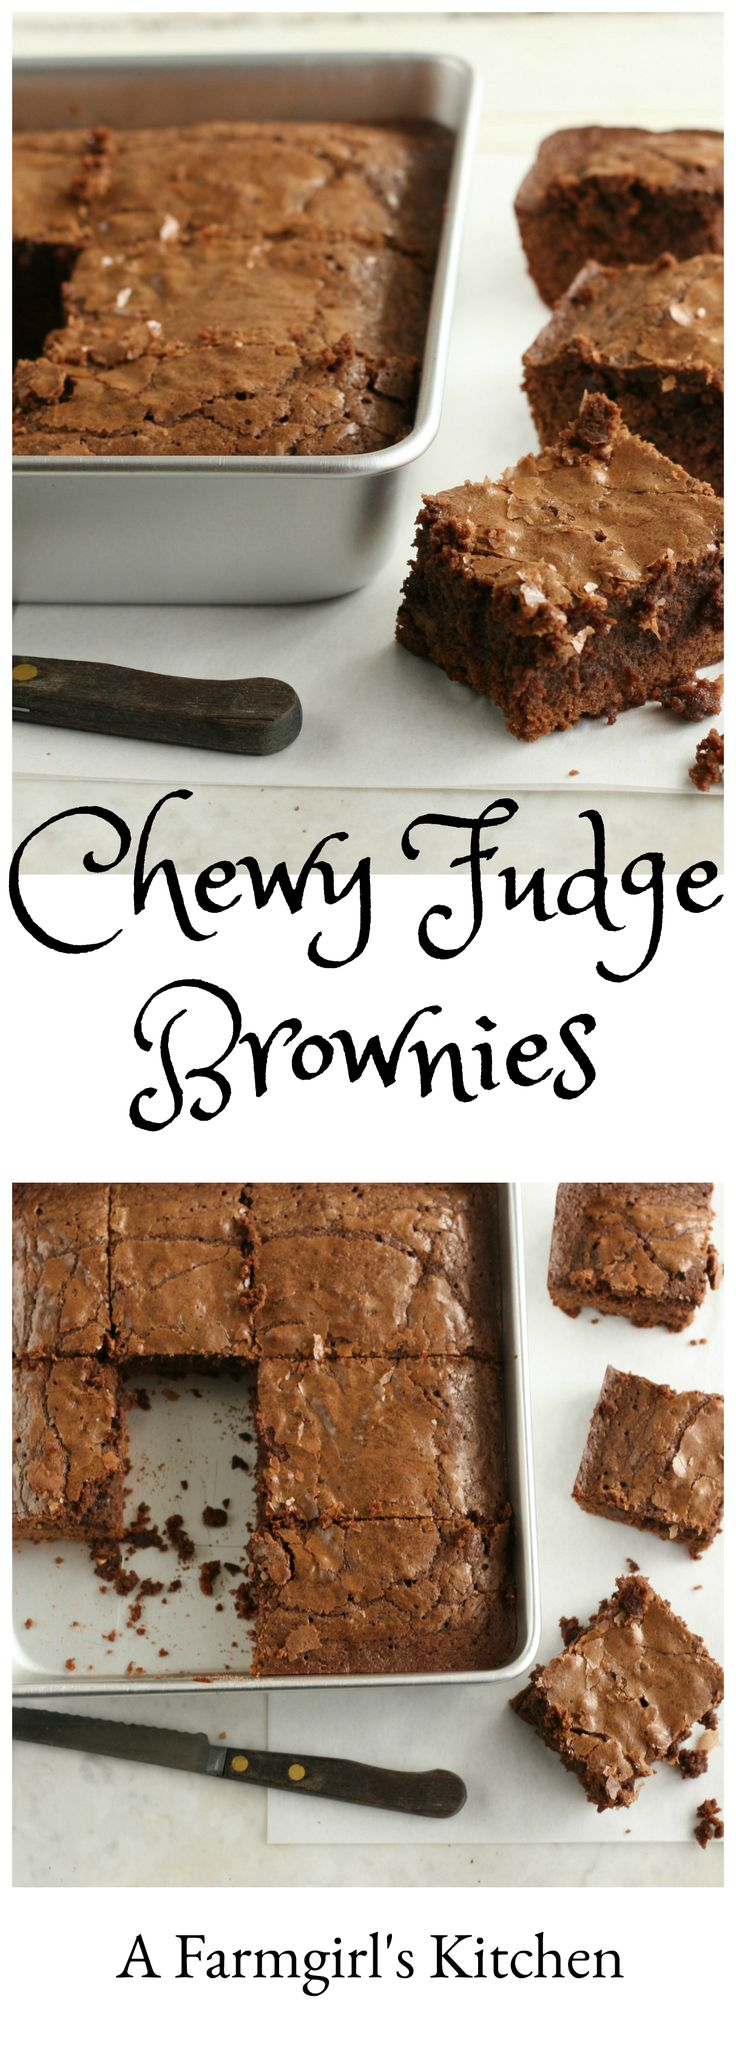 Chewy Fudge Brownie #recipe http://afarmgirlskitchen.com/chewy-fudge-brownies/